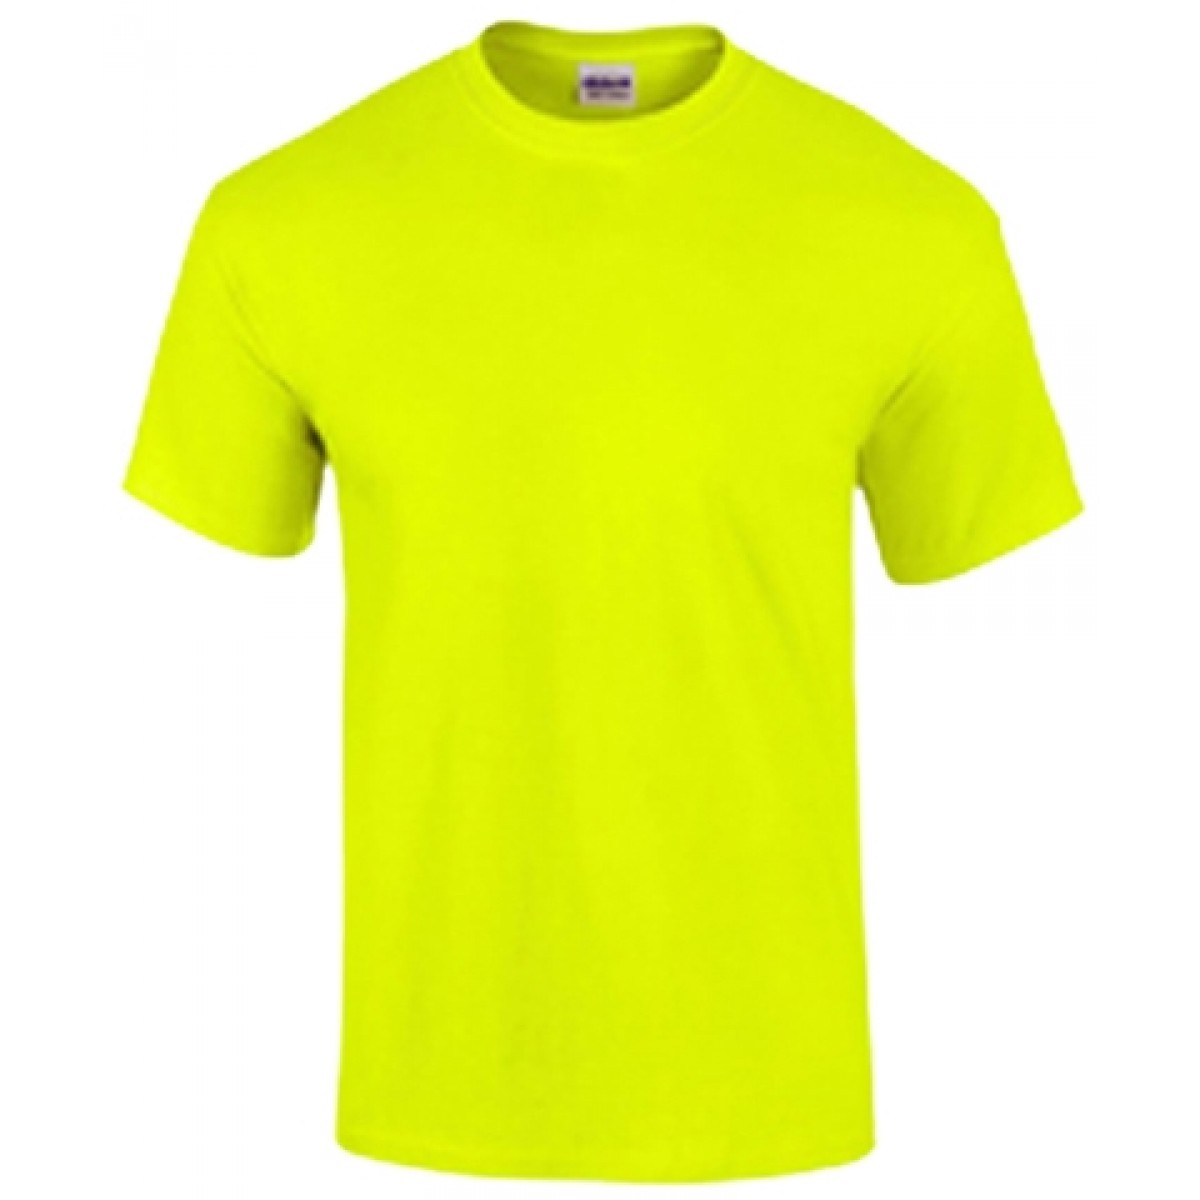 Cotton Short Sleeve T-Shirt / Safety Green